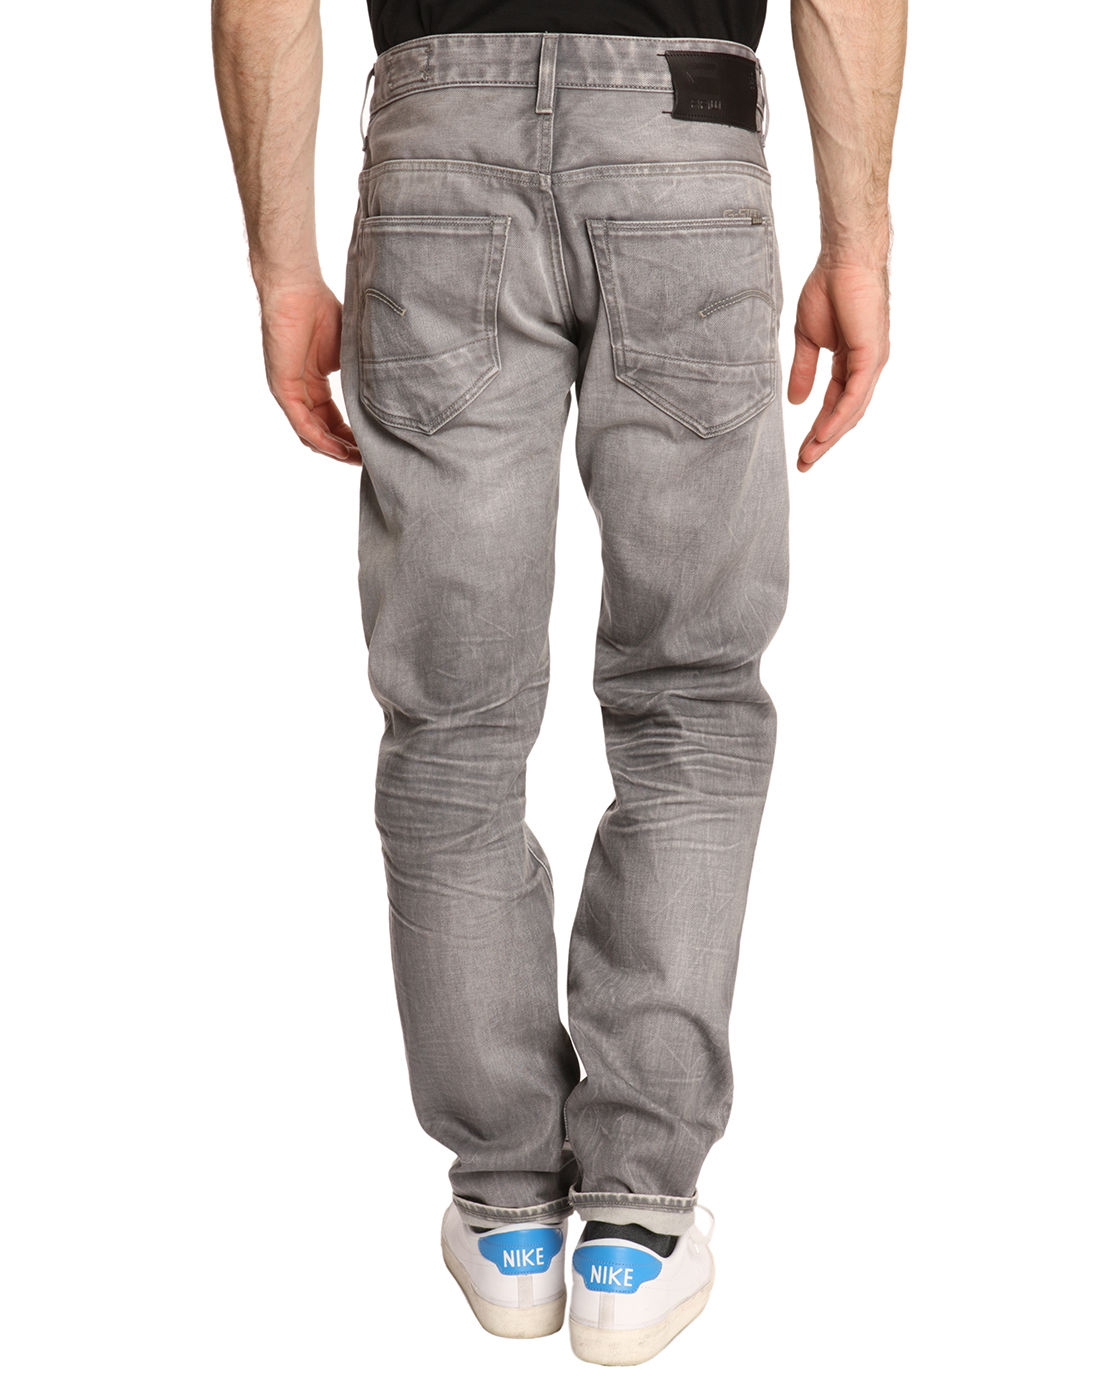 g star raw 3301 low tapered jeans faded grey in gray for men lyst. Black Bedroom Furniture Sets. Home Design Ideas